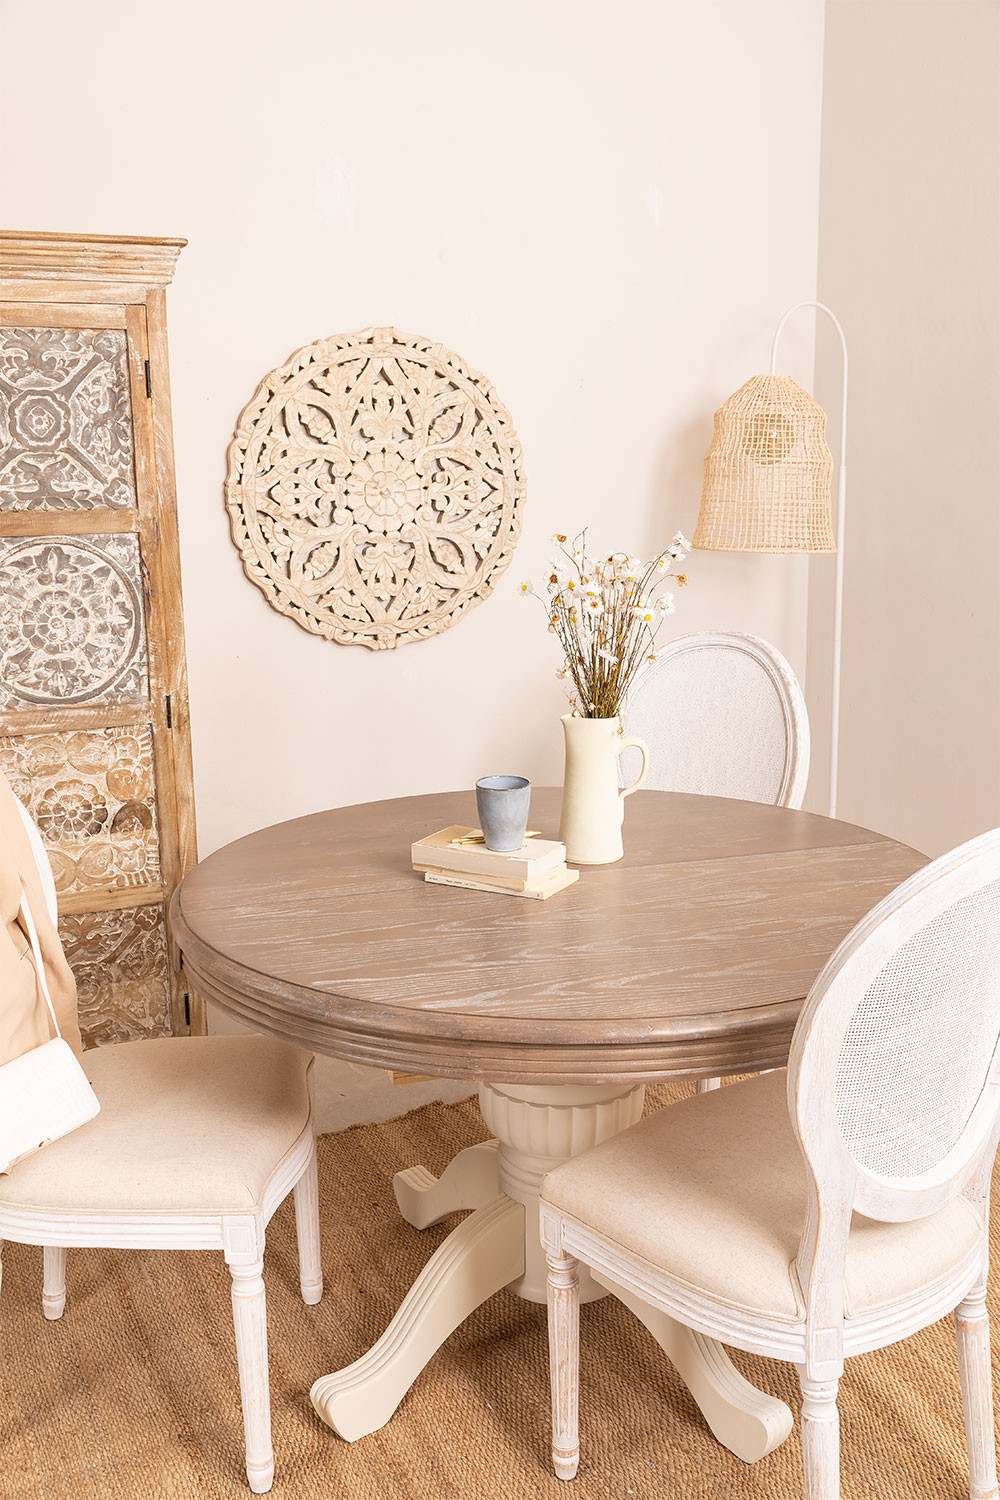 Round Extendable Round Dining Table (120-180x84 cm) Hektra , gallery image 1